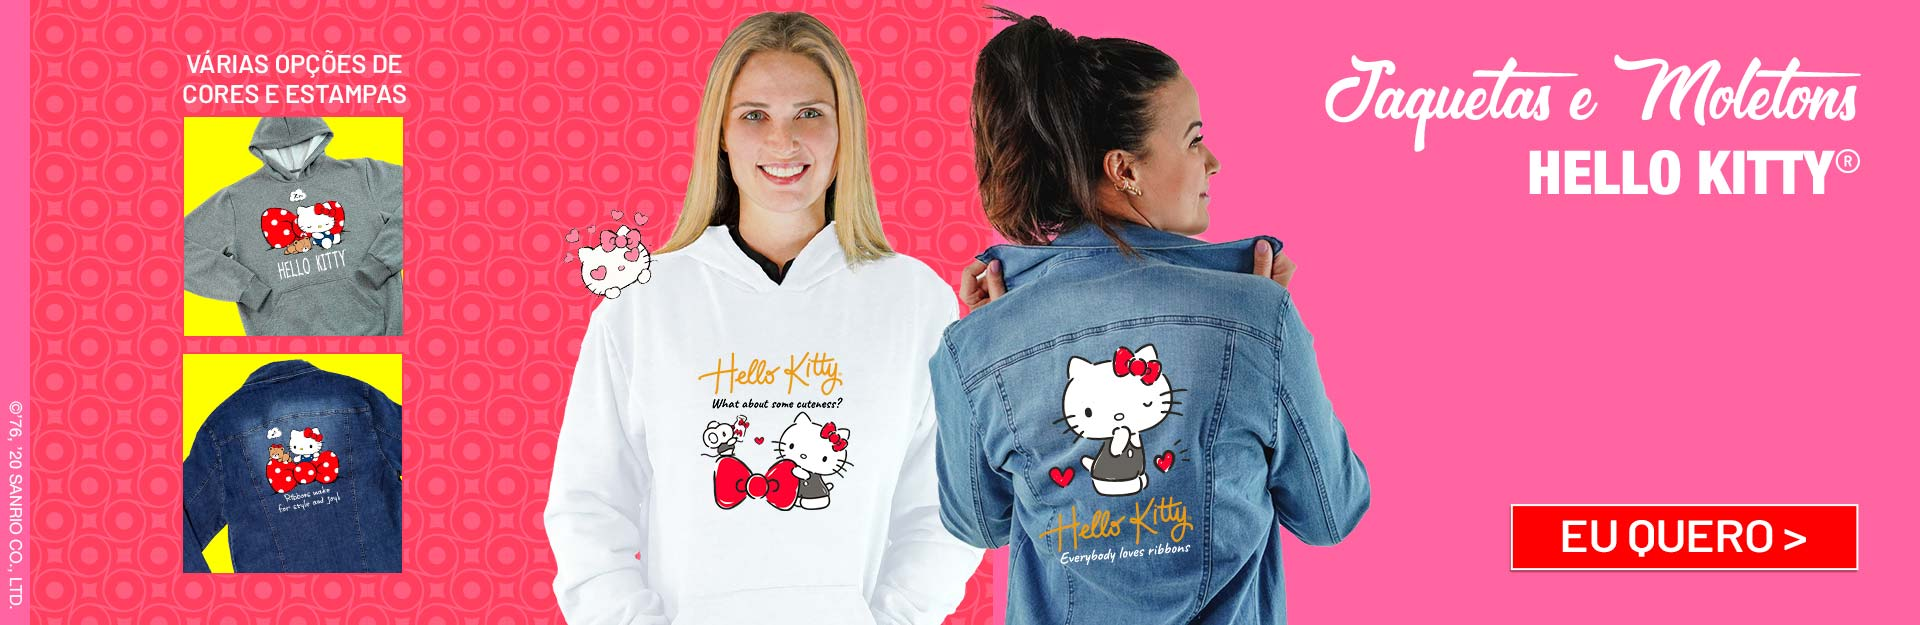 Jaquetas e Camisas Hello Kitty